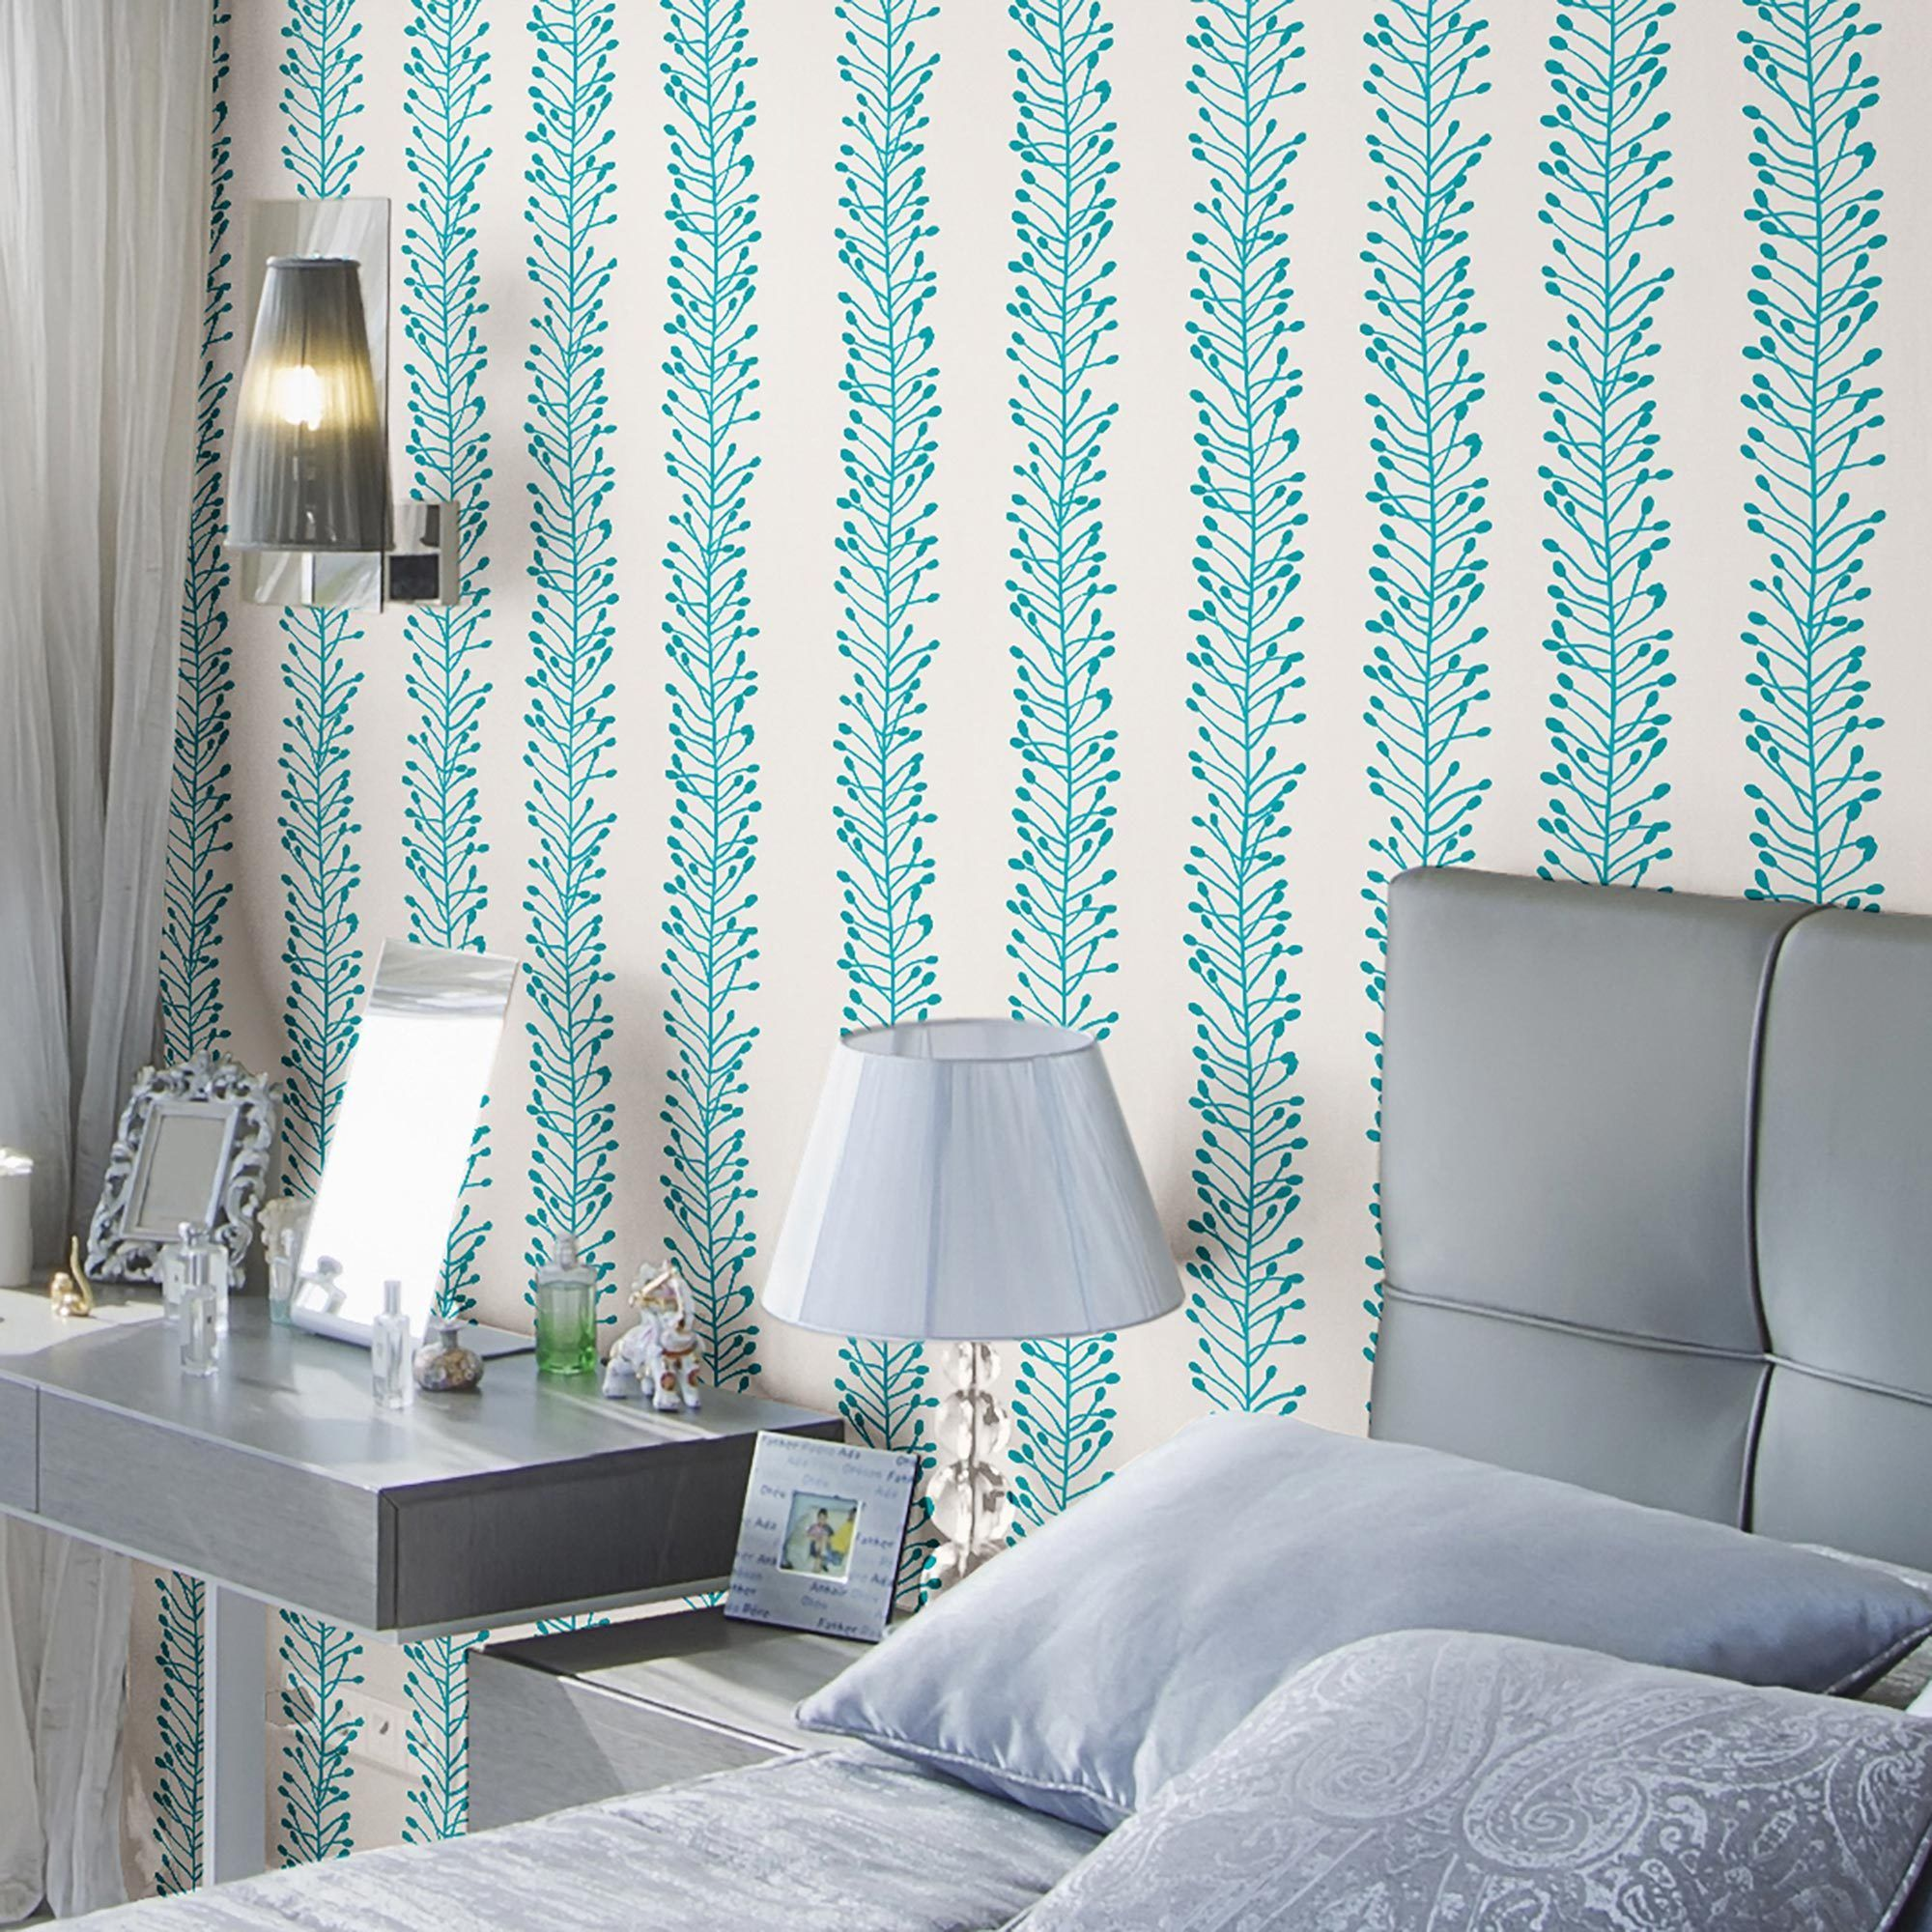 Blue Floral Basic Fabric Removable Wallpaper 0775 Chic